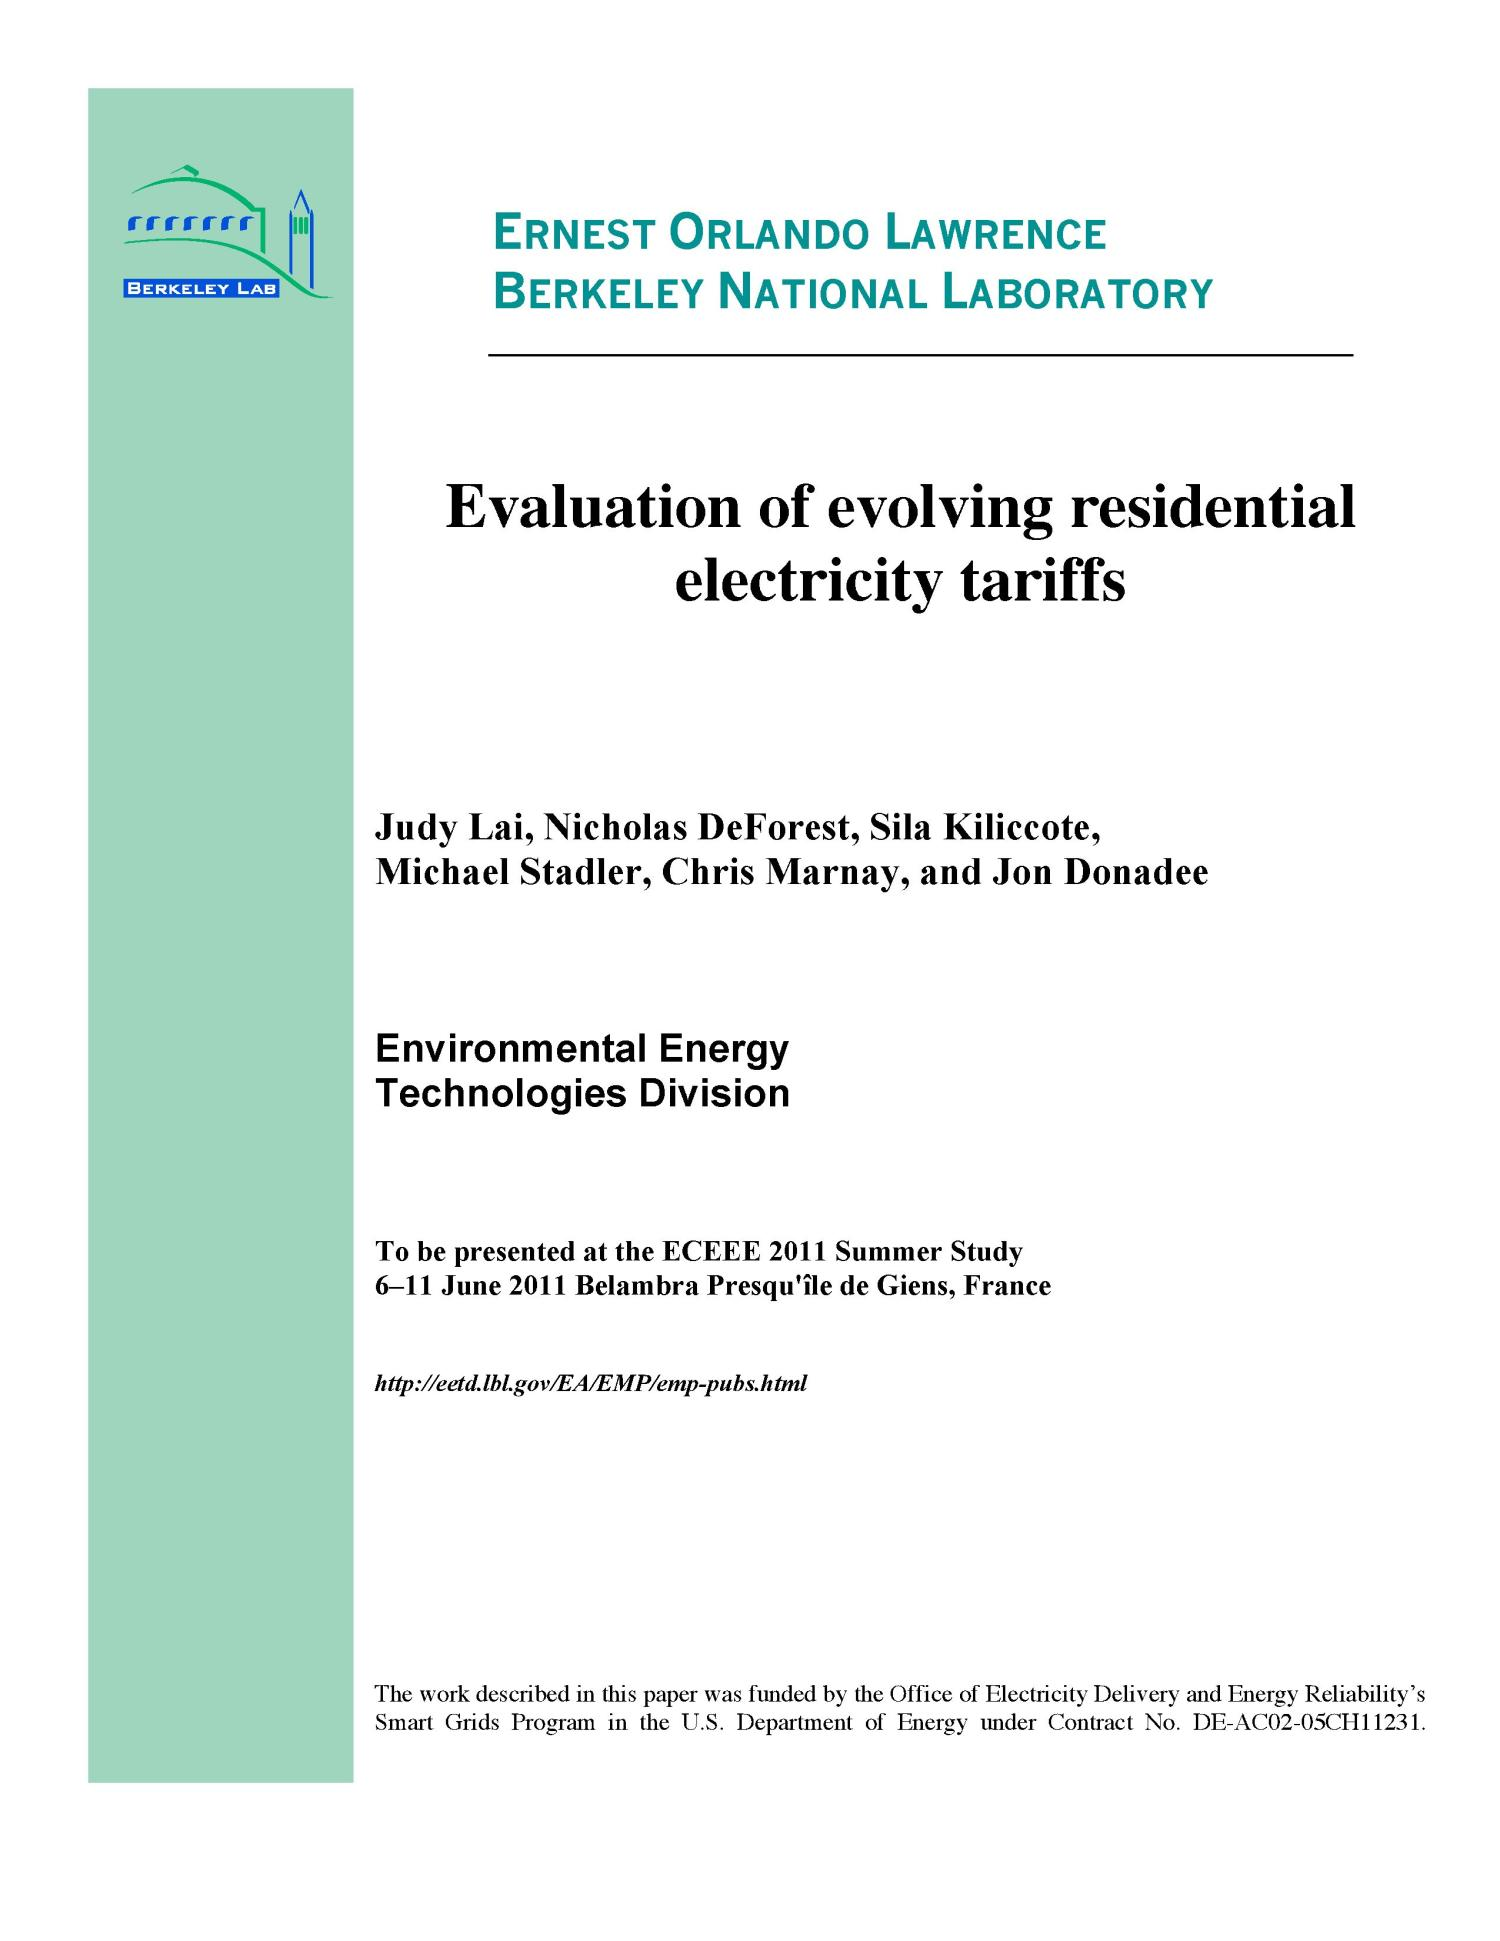 Evaluation Of Evolving Residential Electricity Tariffs Digital Library Wiring Parallel Or Series